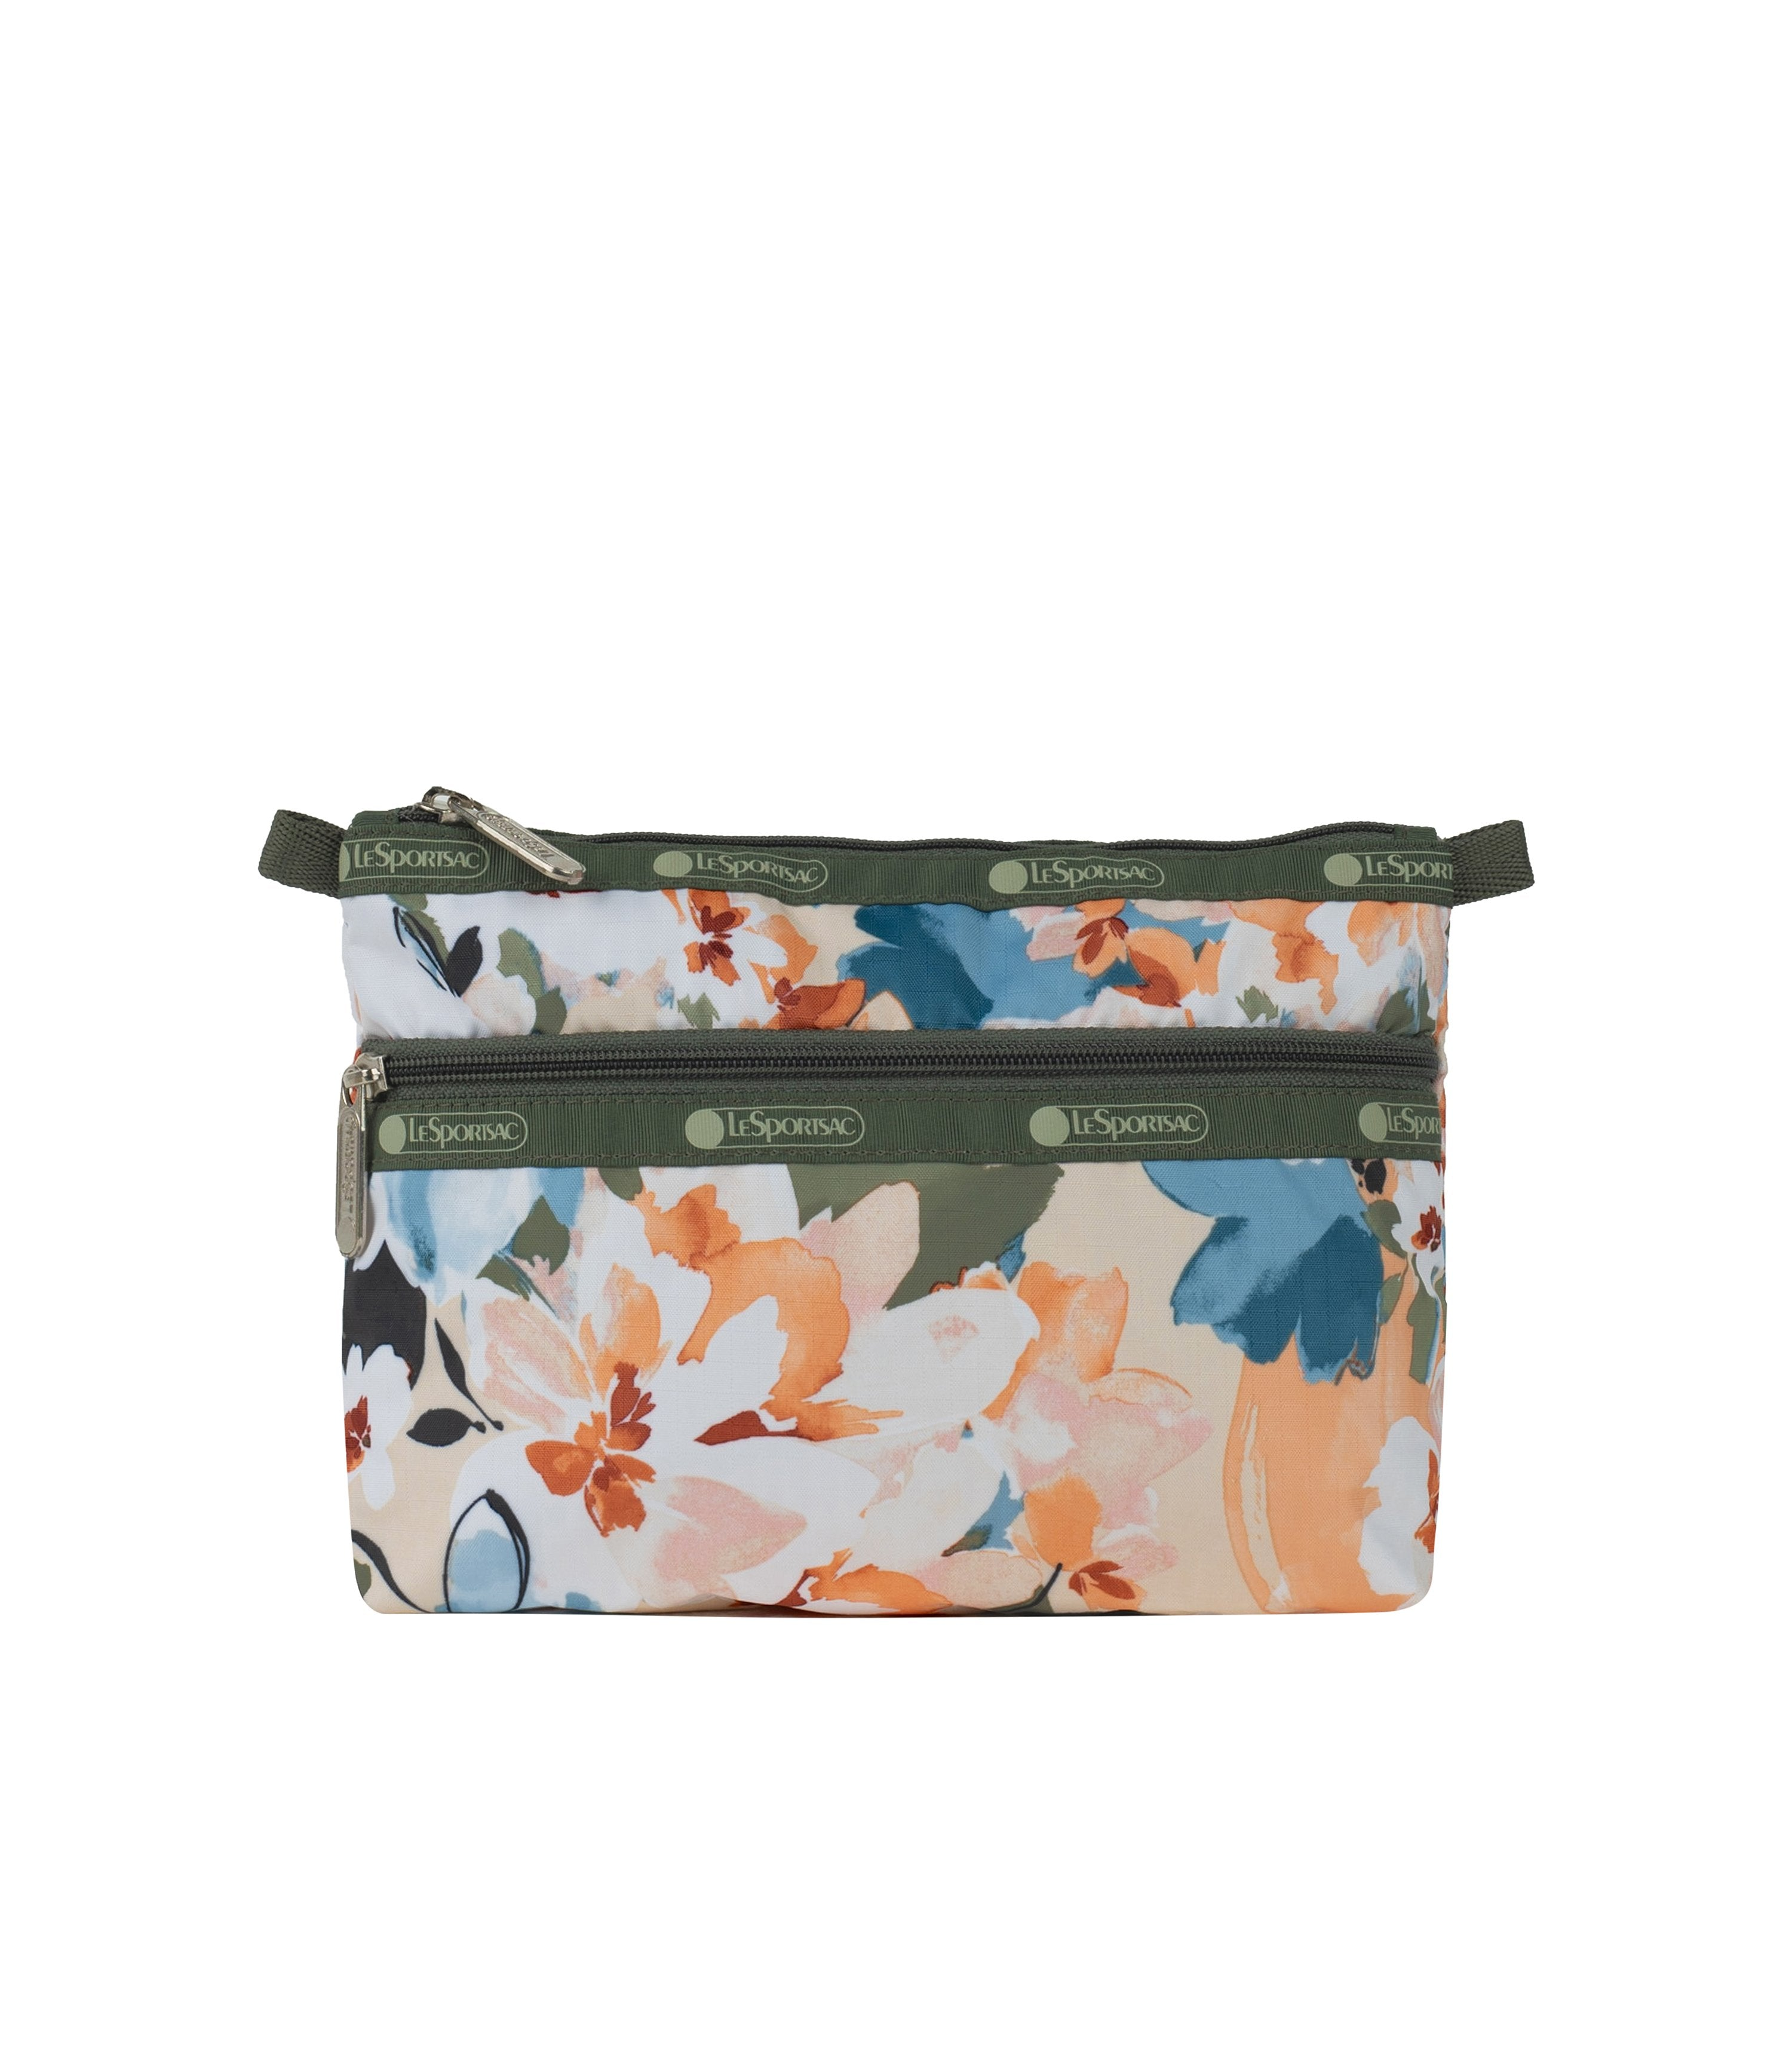 LeSportsac - Accessories - Cosmetic Clutch - Painterly Blooms print